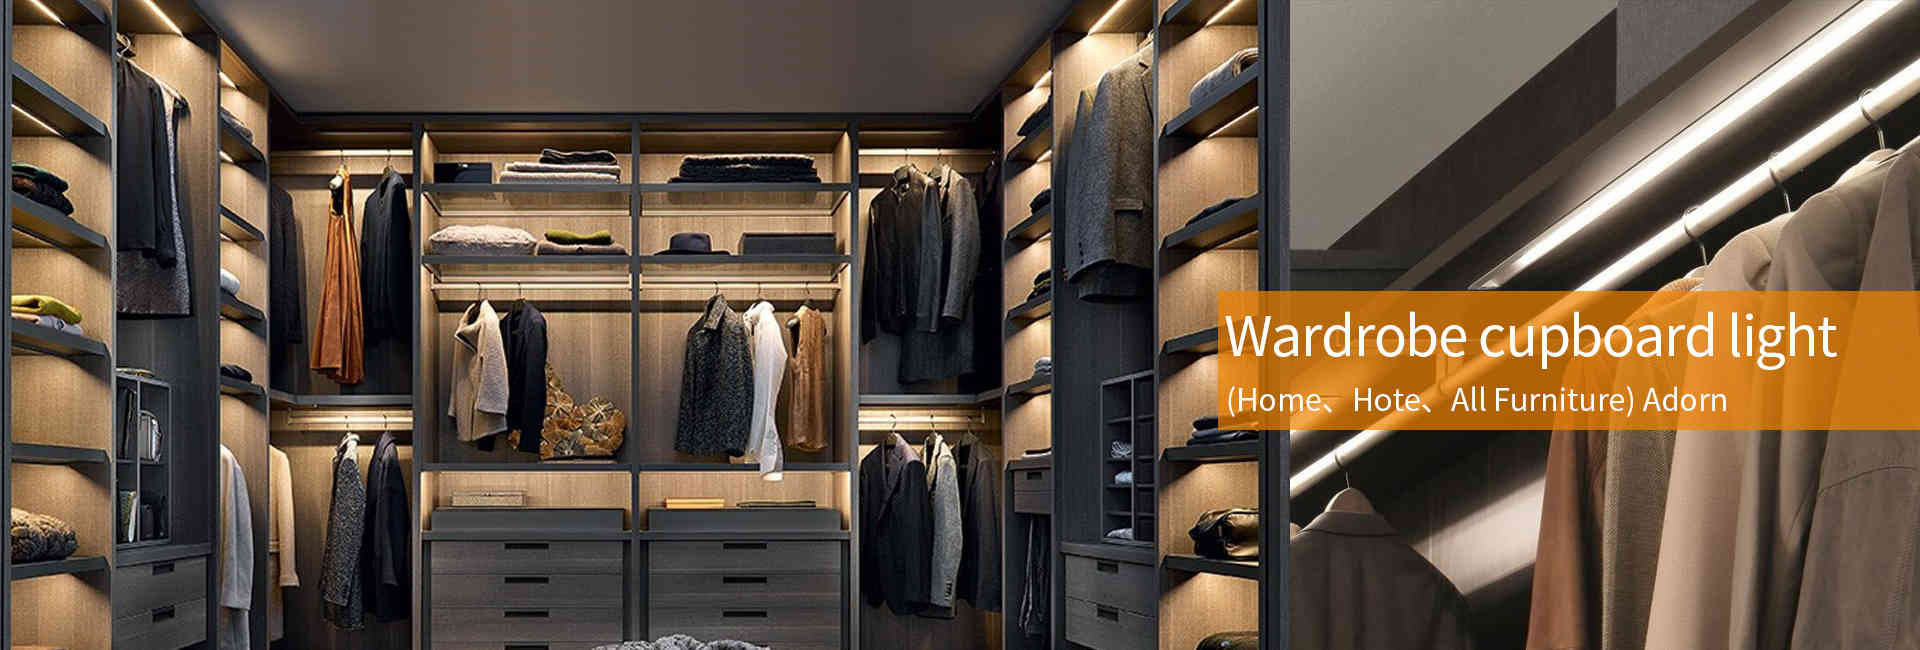 wardrobe cupboard led lights